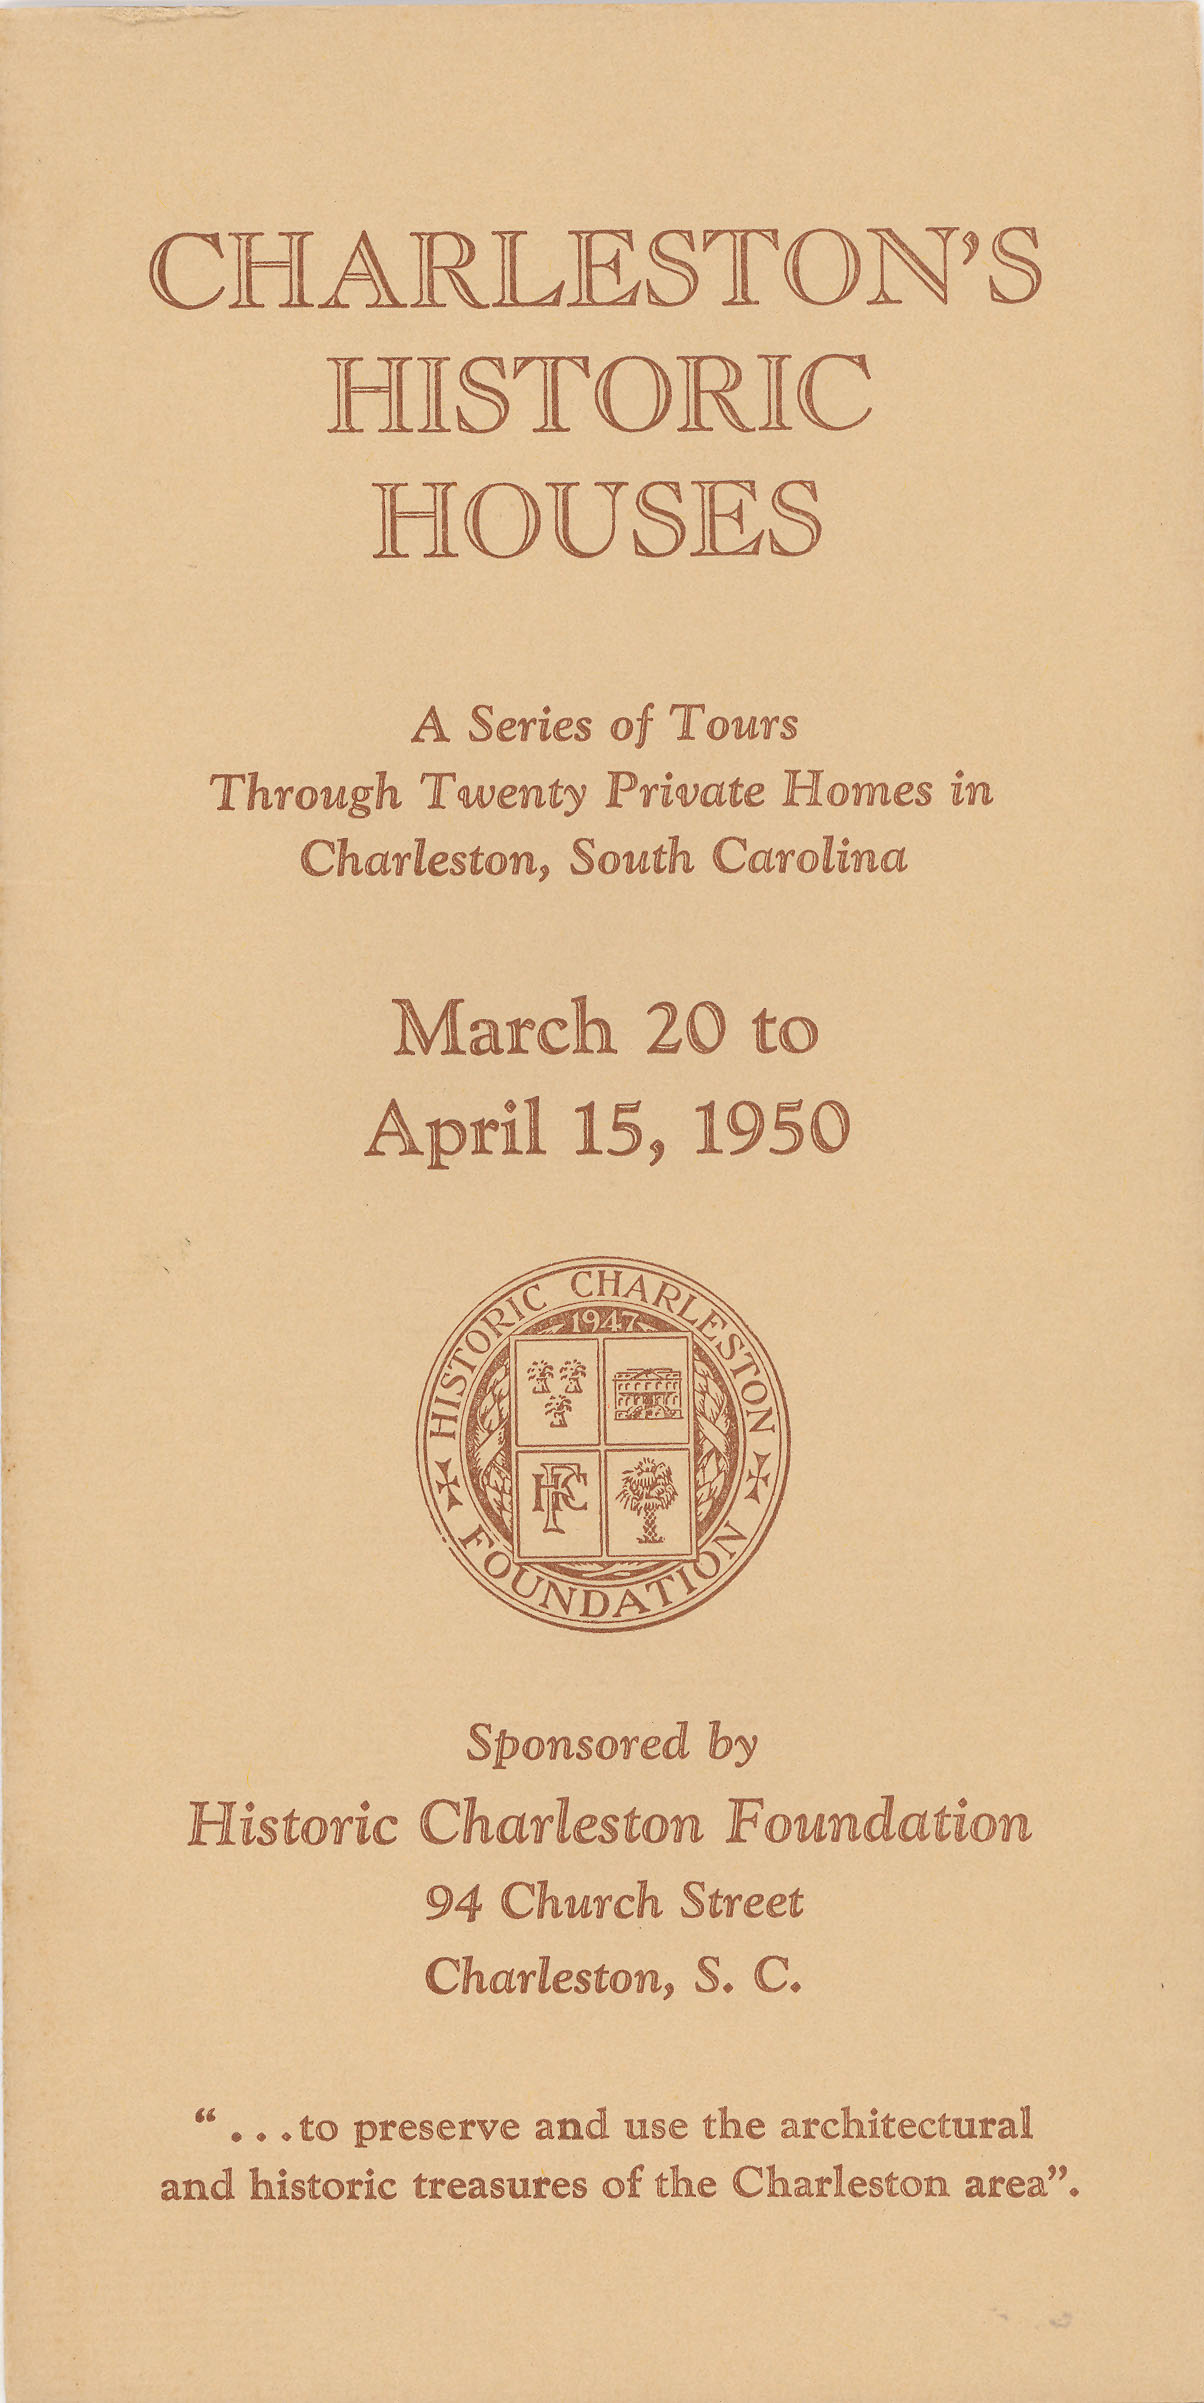 Charleston's Historic Houses, 1950:  Third Annual Tours Sponsored by Historic Charleston Foundation